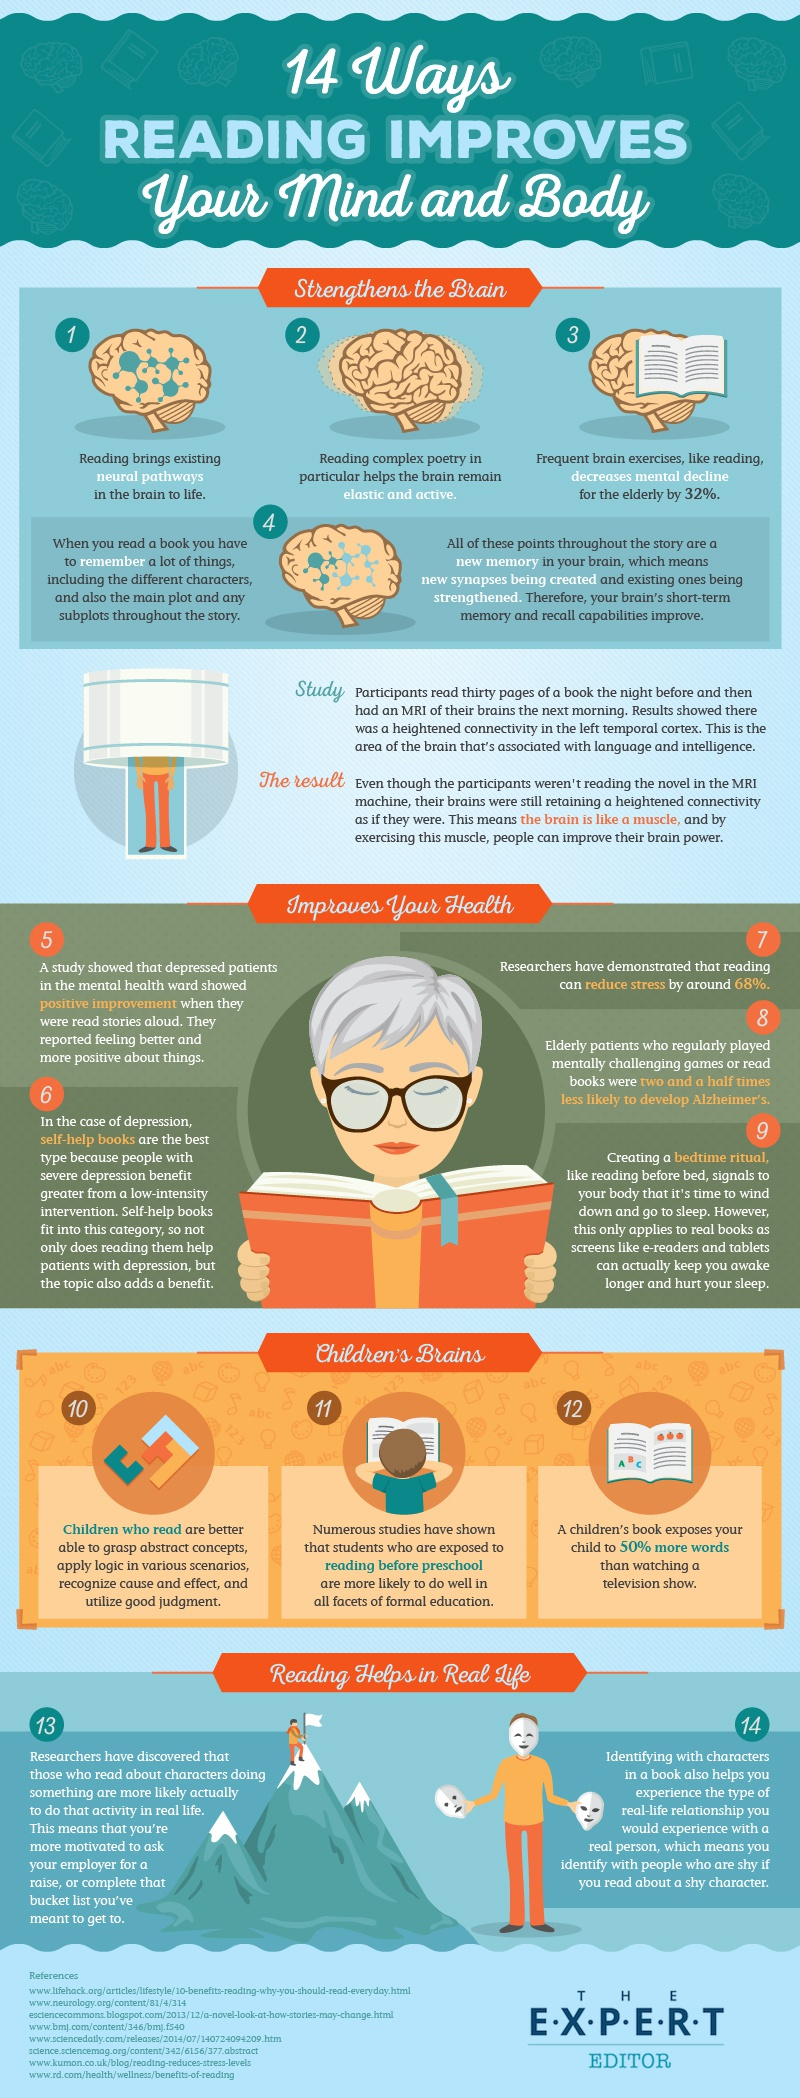 14 Ways Reading Improves Your Mind and Body